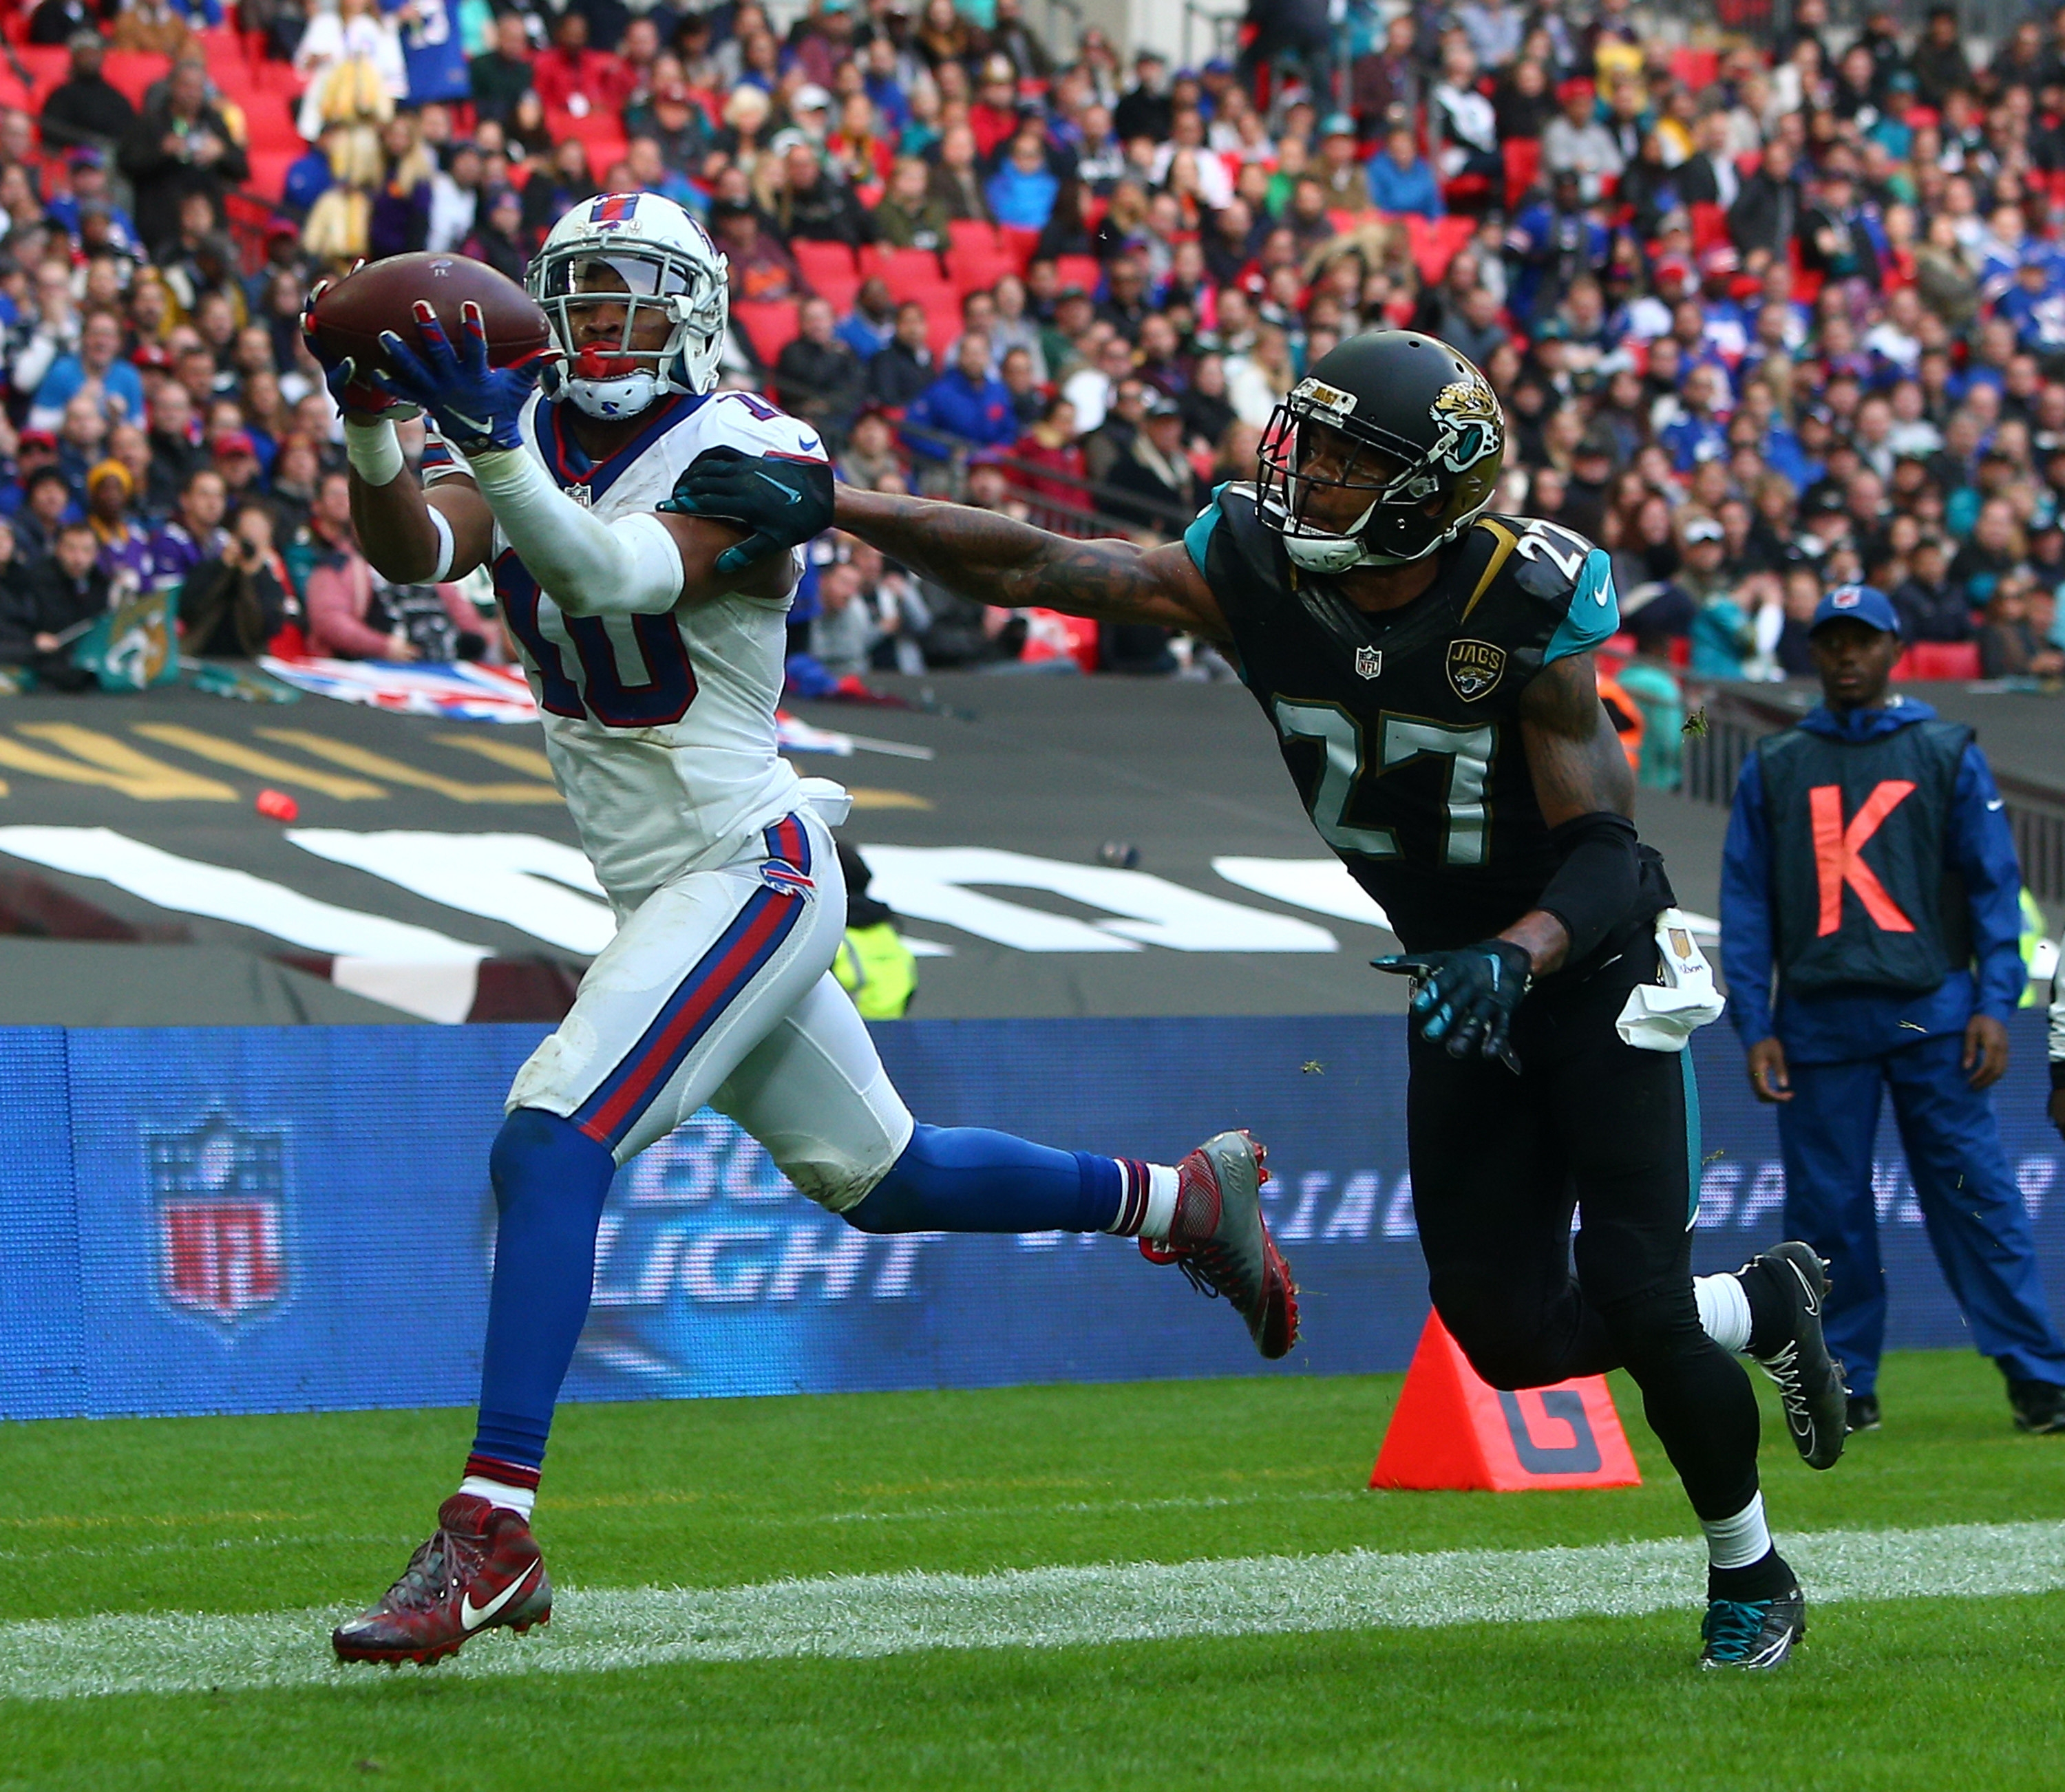 Buffalo's Robert Woods pulls in a touchdown pass during the game against the Jacksonville Jaguars at Wembley Stadium in London on Sunday.